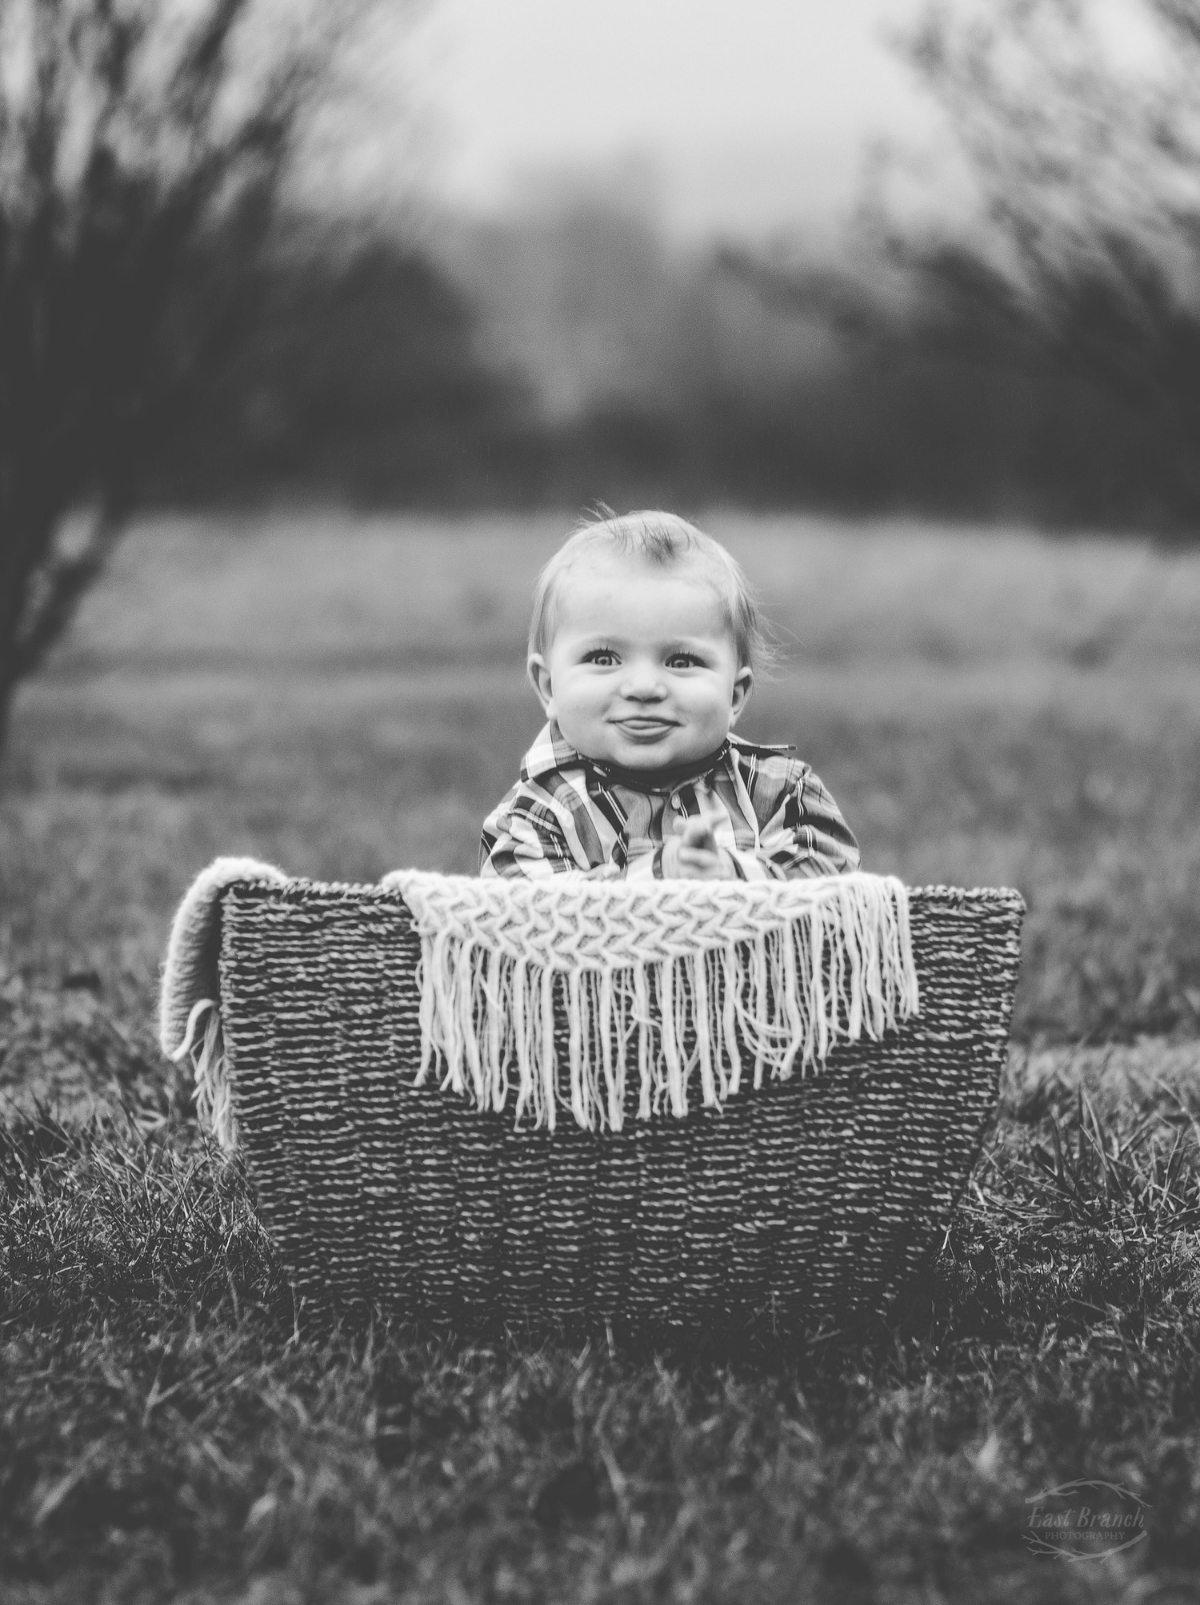 It was a little chilly, but he was perfectly happy hanging out in that basket.